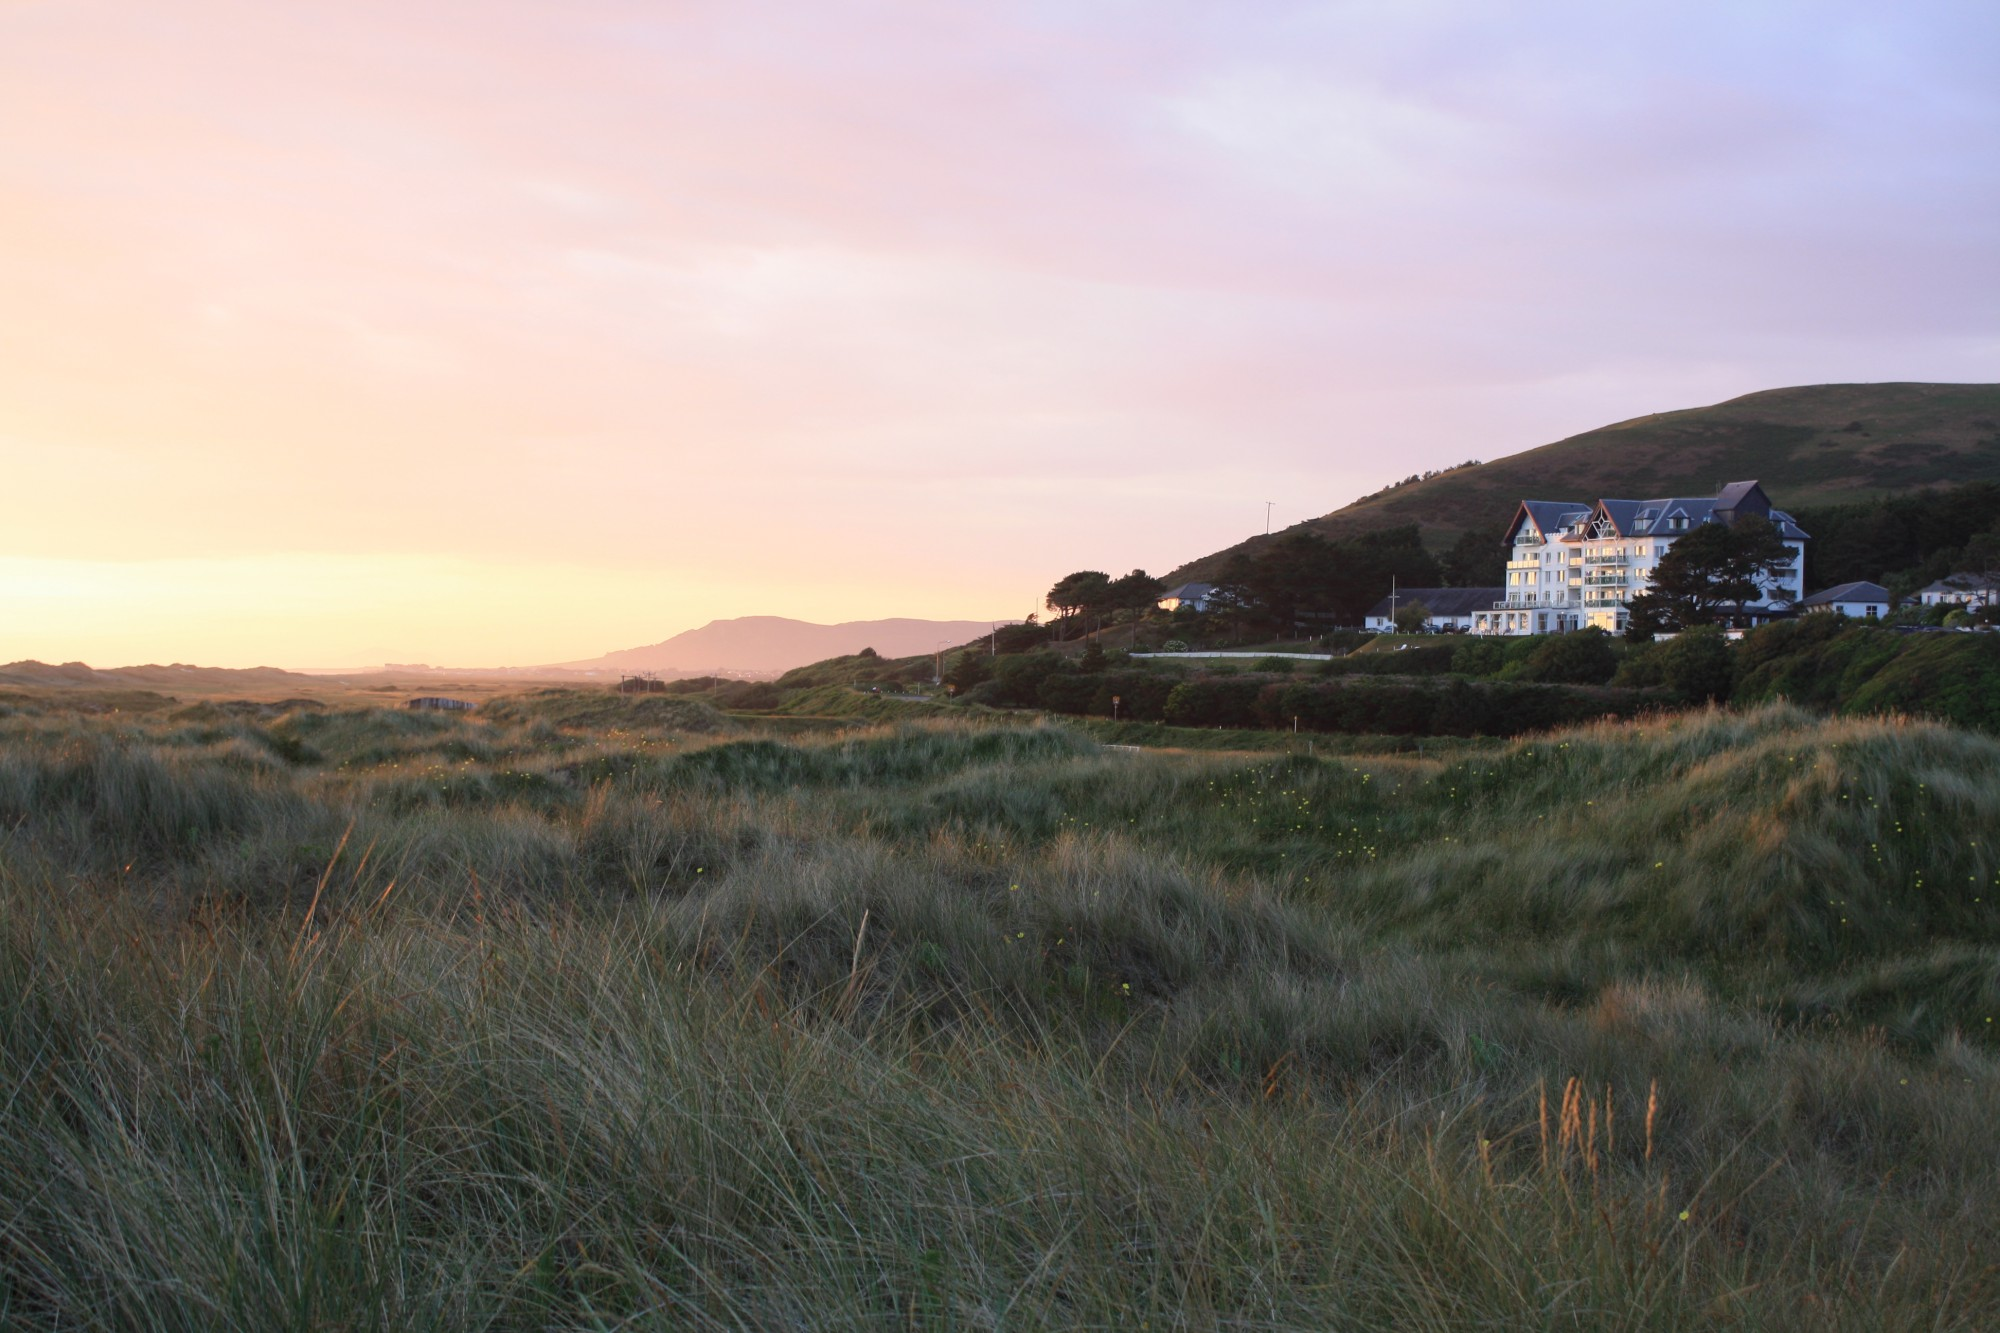 Looking over the Aberdovey dunes and golf course